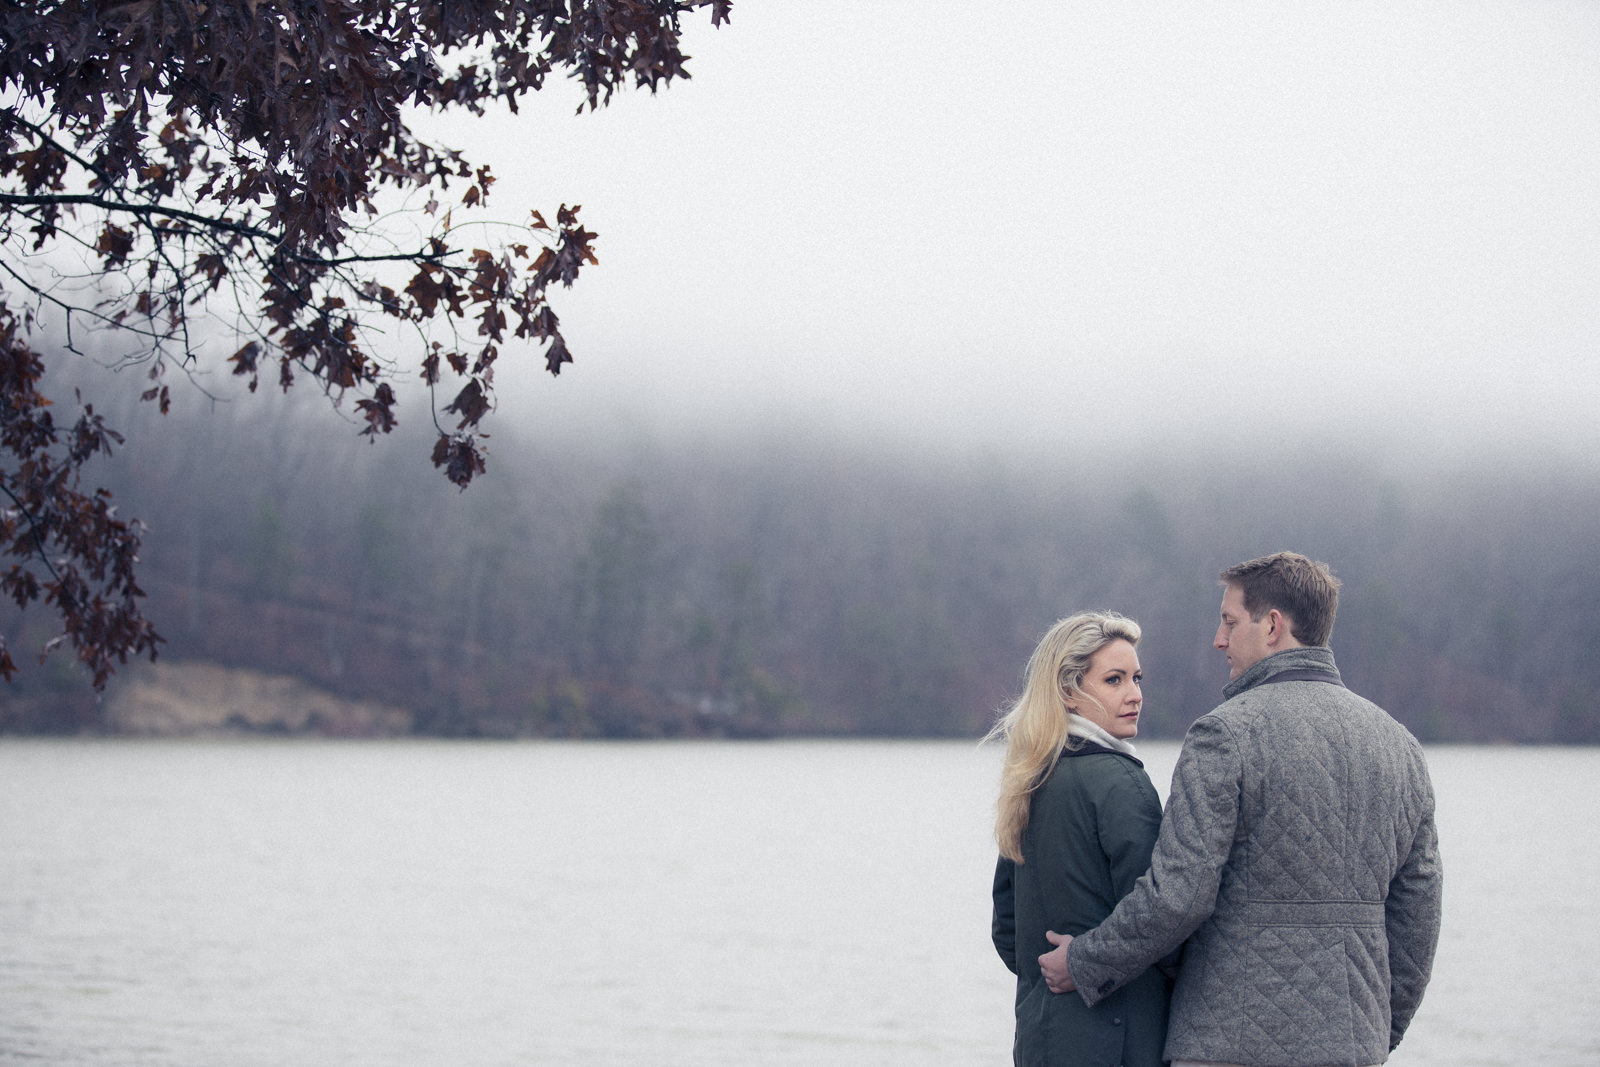 Engagement portraits in Atlanta Georgia near the lake fog rolling in